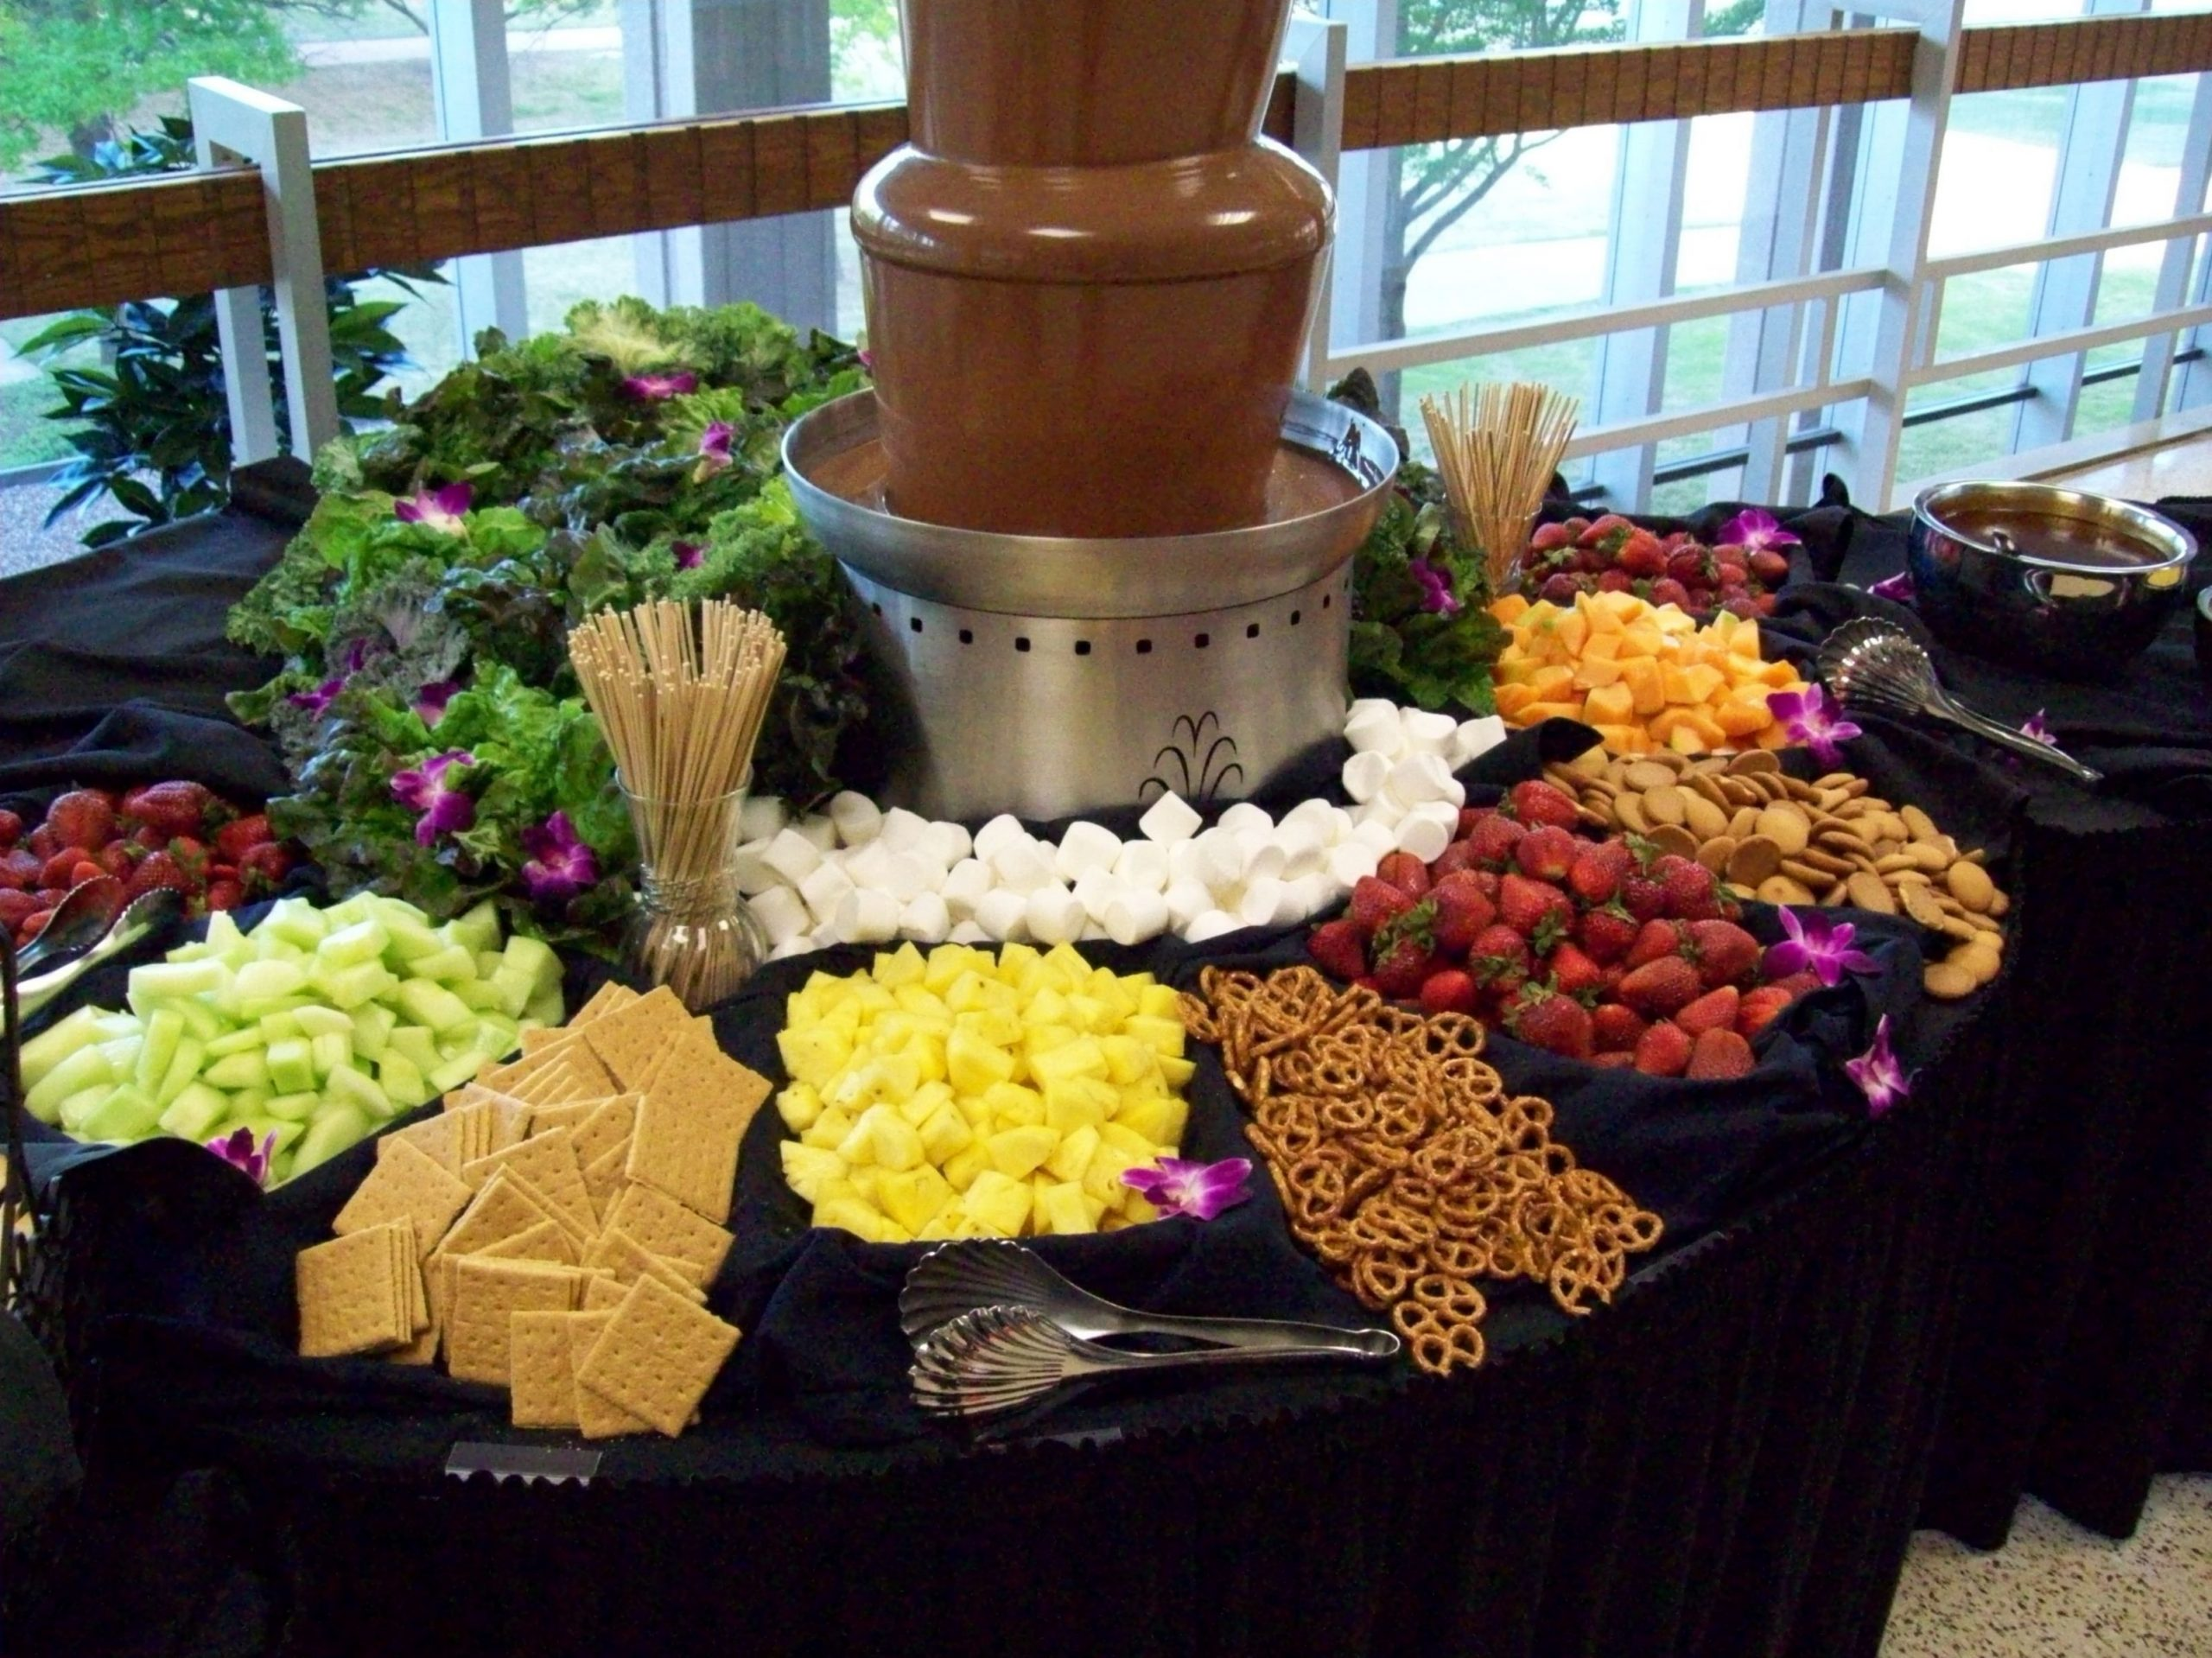 Chocolate Fountain and Fruit Display | Chocolate fountain recipes ..